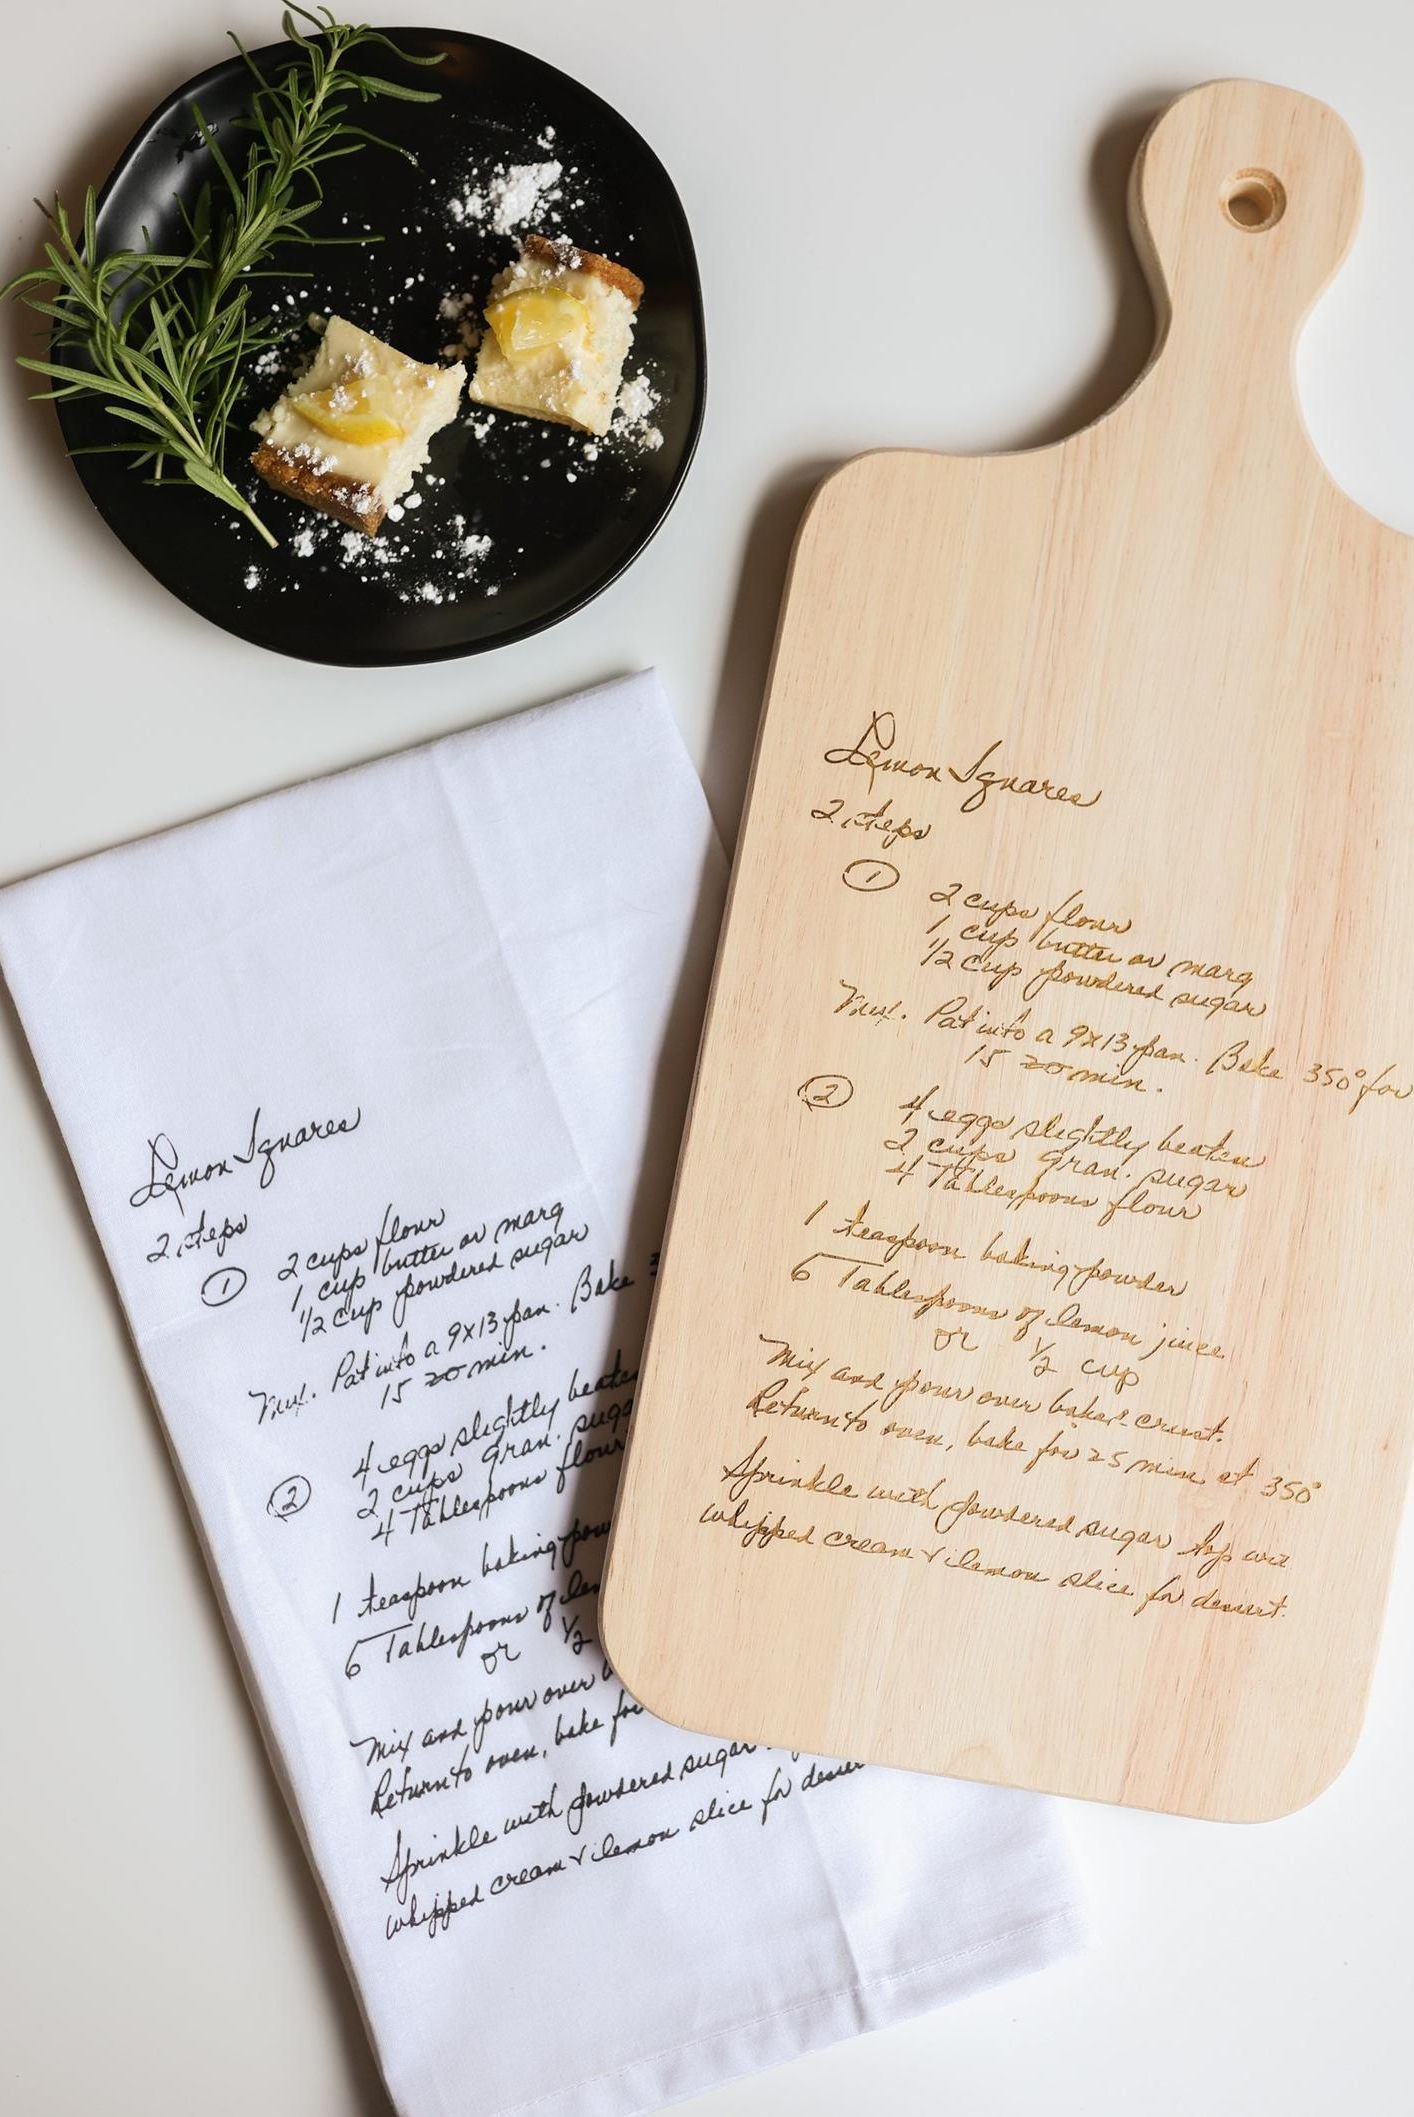 Have your family handwritten recipe engraved on a wooden cutting board and printed on the 100% cotton tea towel, making the perfect sentimental gift for a loved one